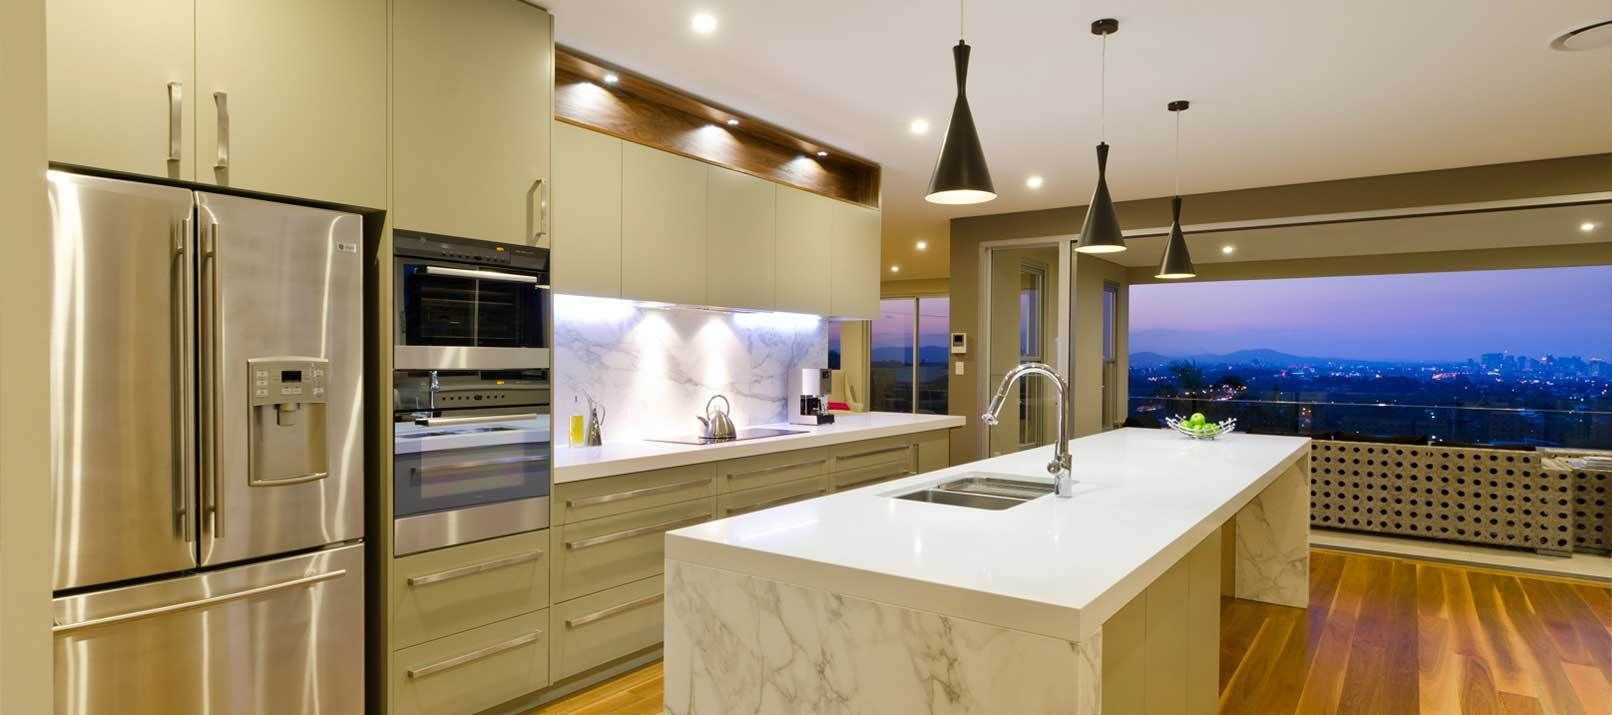 banner kathie by brisbane home new designers designer kitchens kitchen